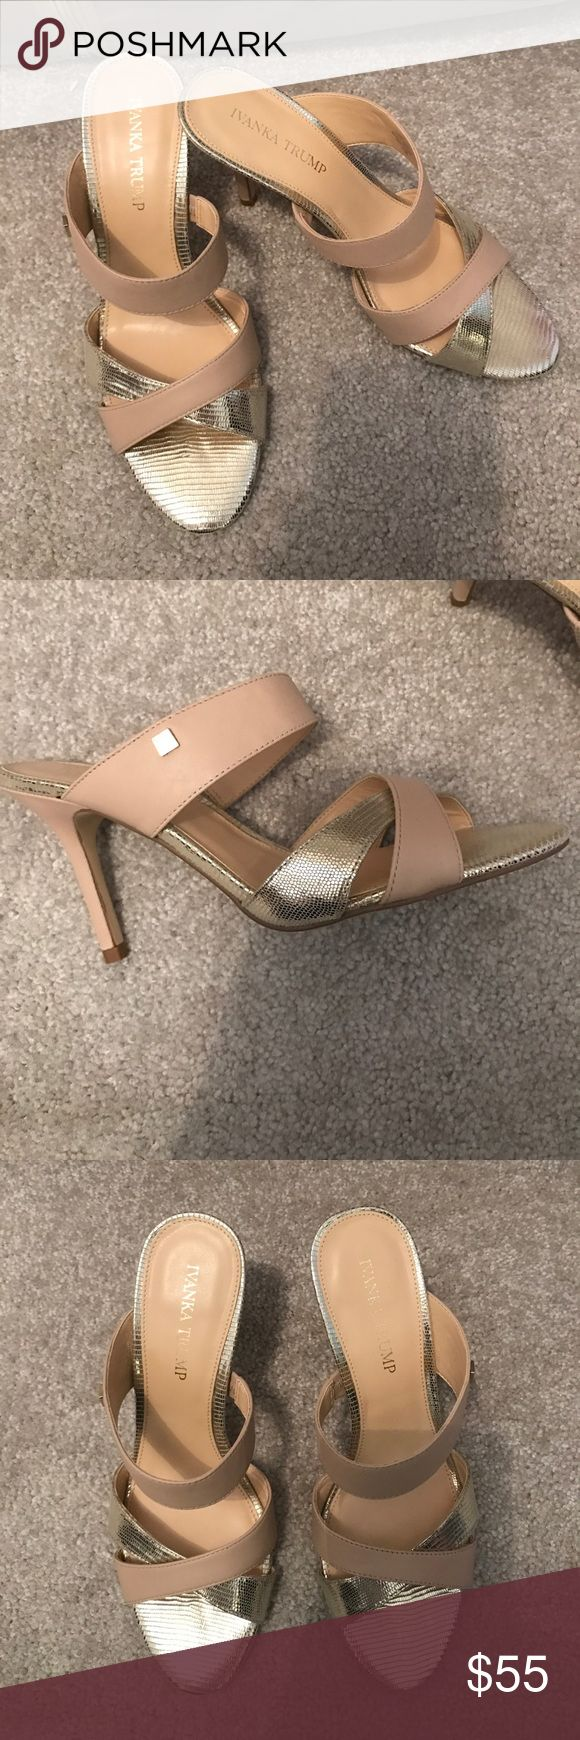 """Ivanka Trump heel sandals nude and gold size 8.5 NWOB Ivanka Trump heel sandals in nude and metallic gold- size 8.5 M. Never worn, no box. Heel height 3.5"""". Flawless, no wear at all. Ivanka Trump Shoes Sandals"""